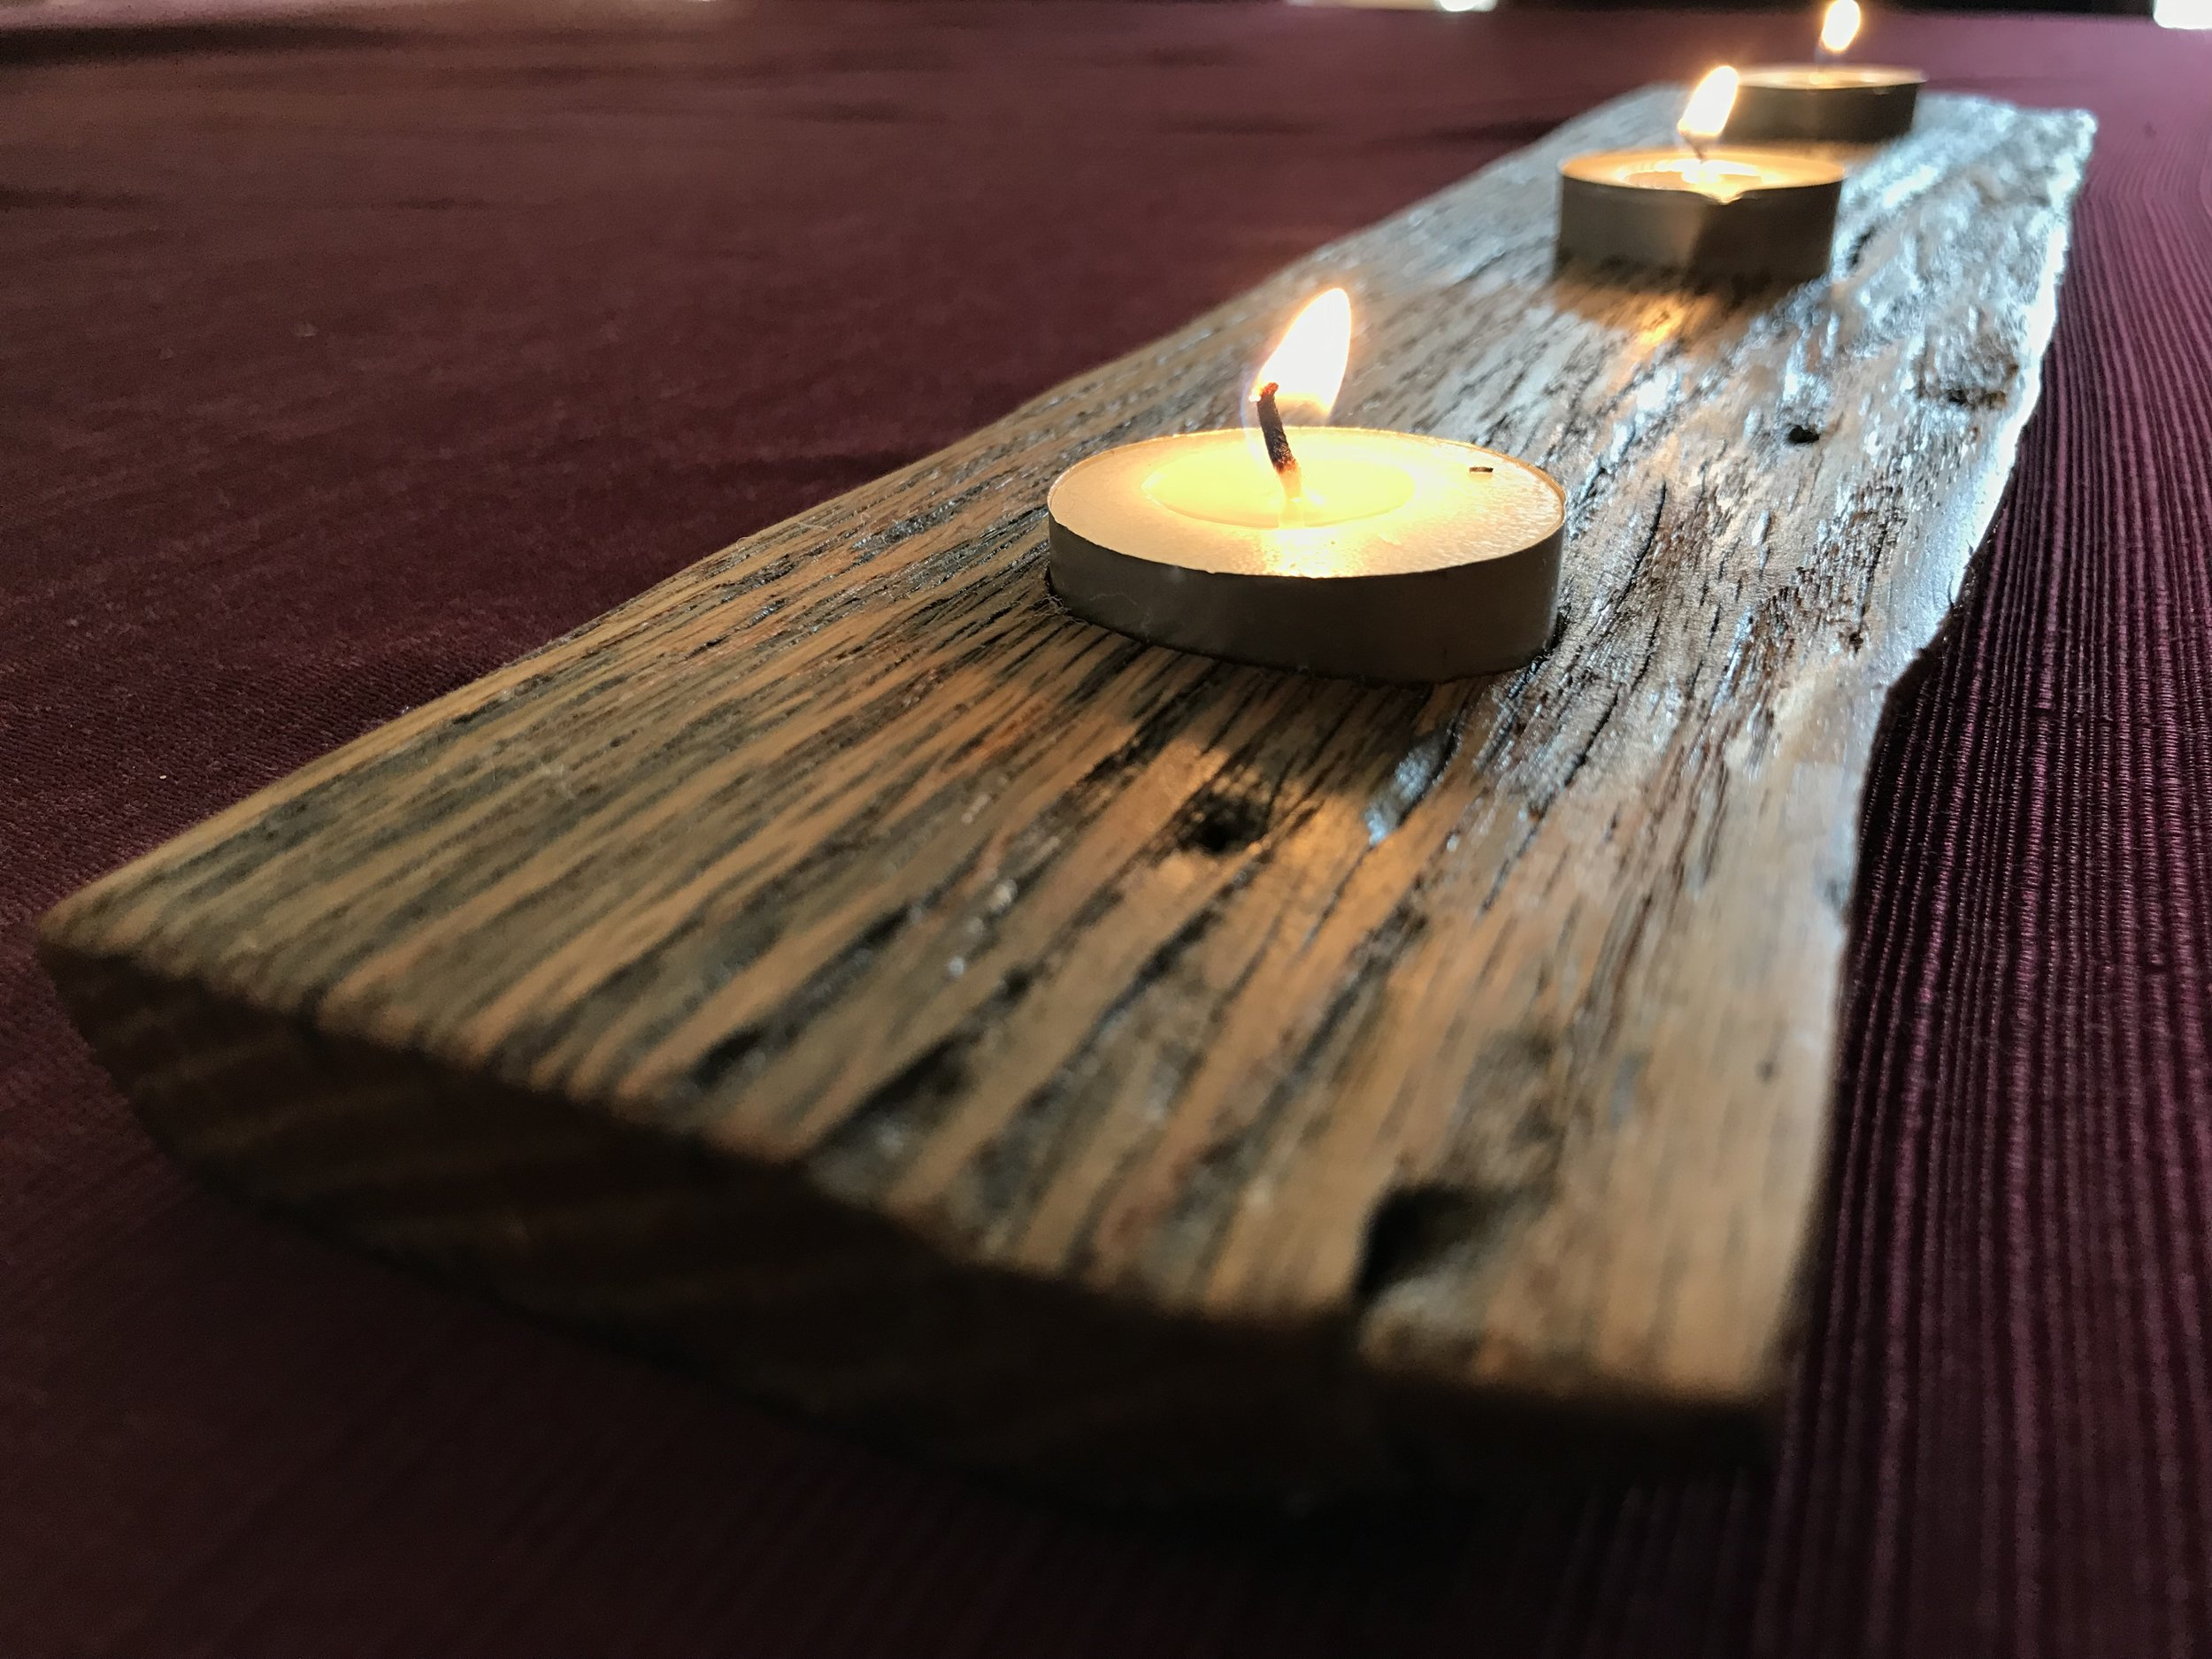 Used barn wood candle holder created with scrap wood